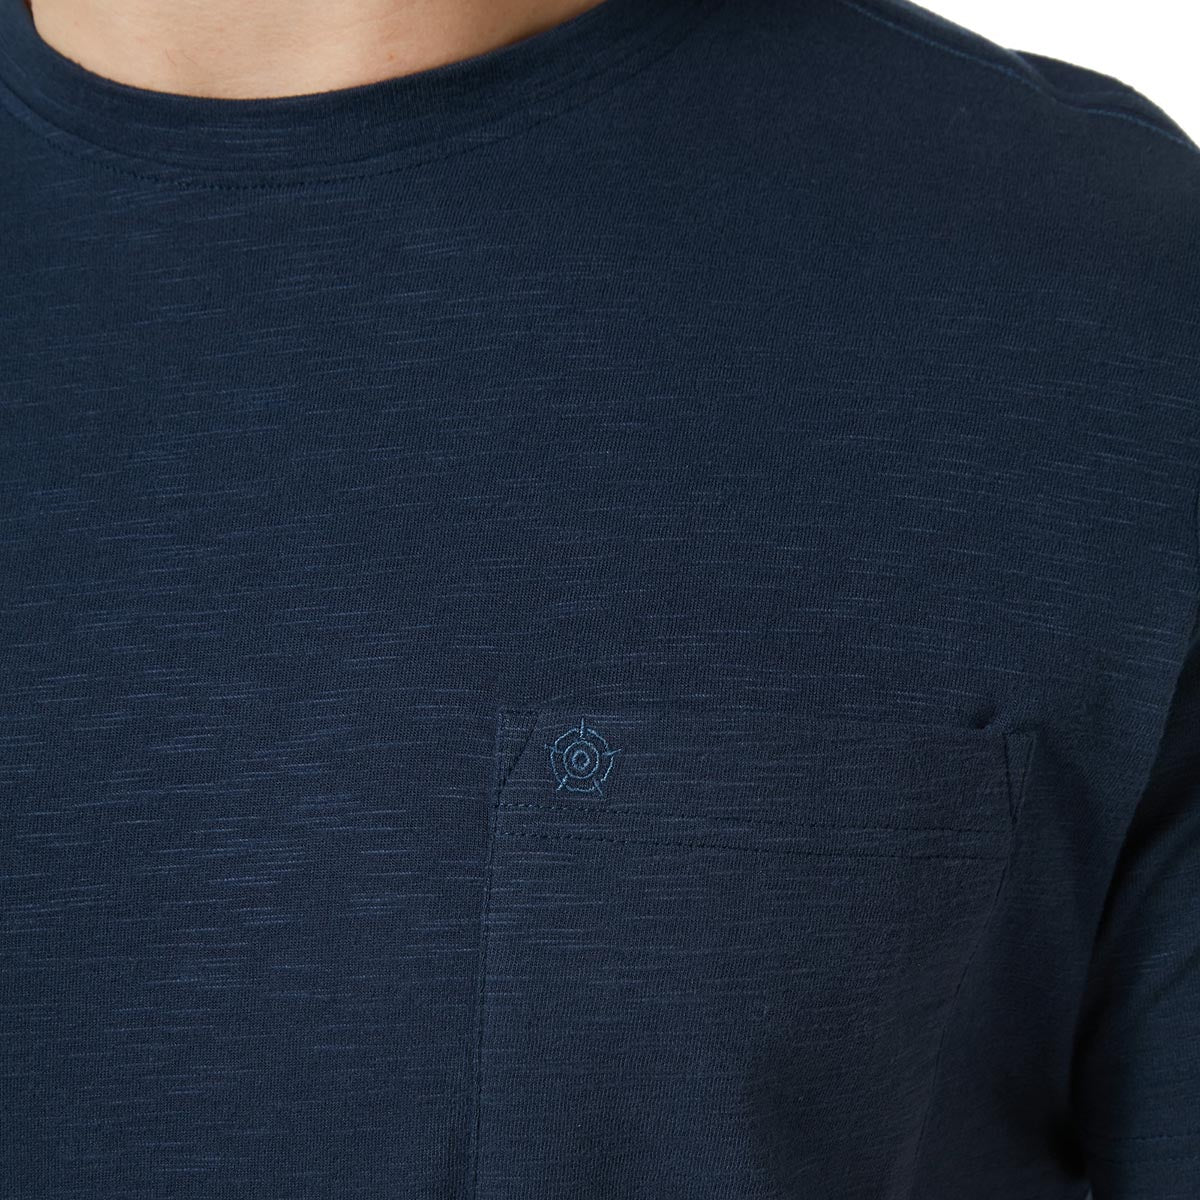 Brayton Mens T-Shirt - Denim image 4